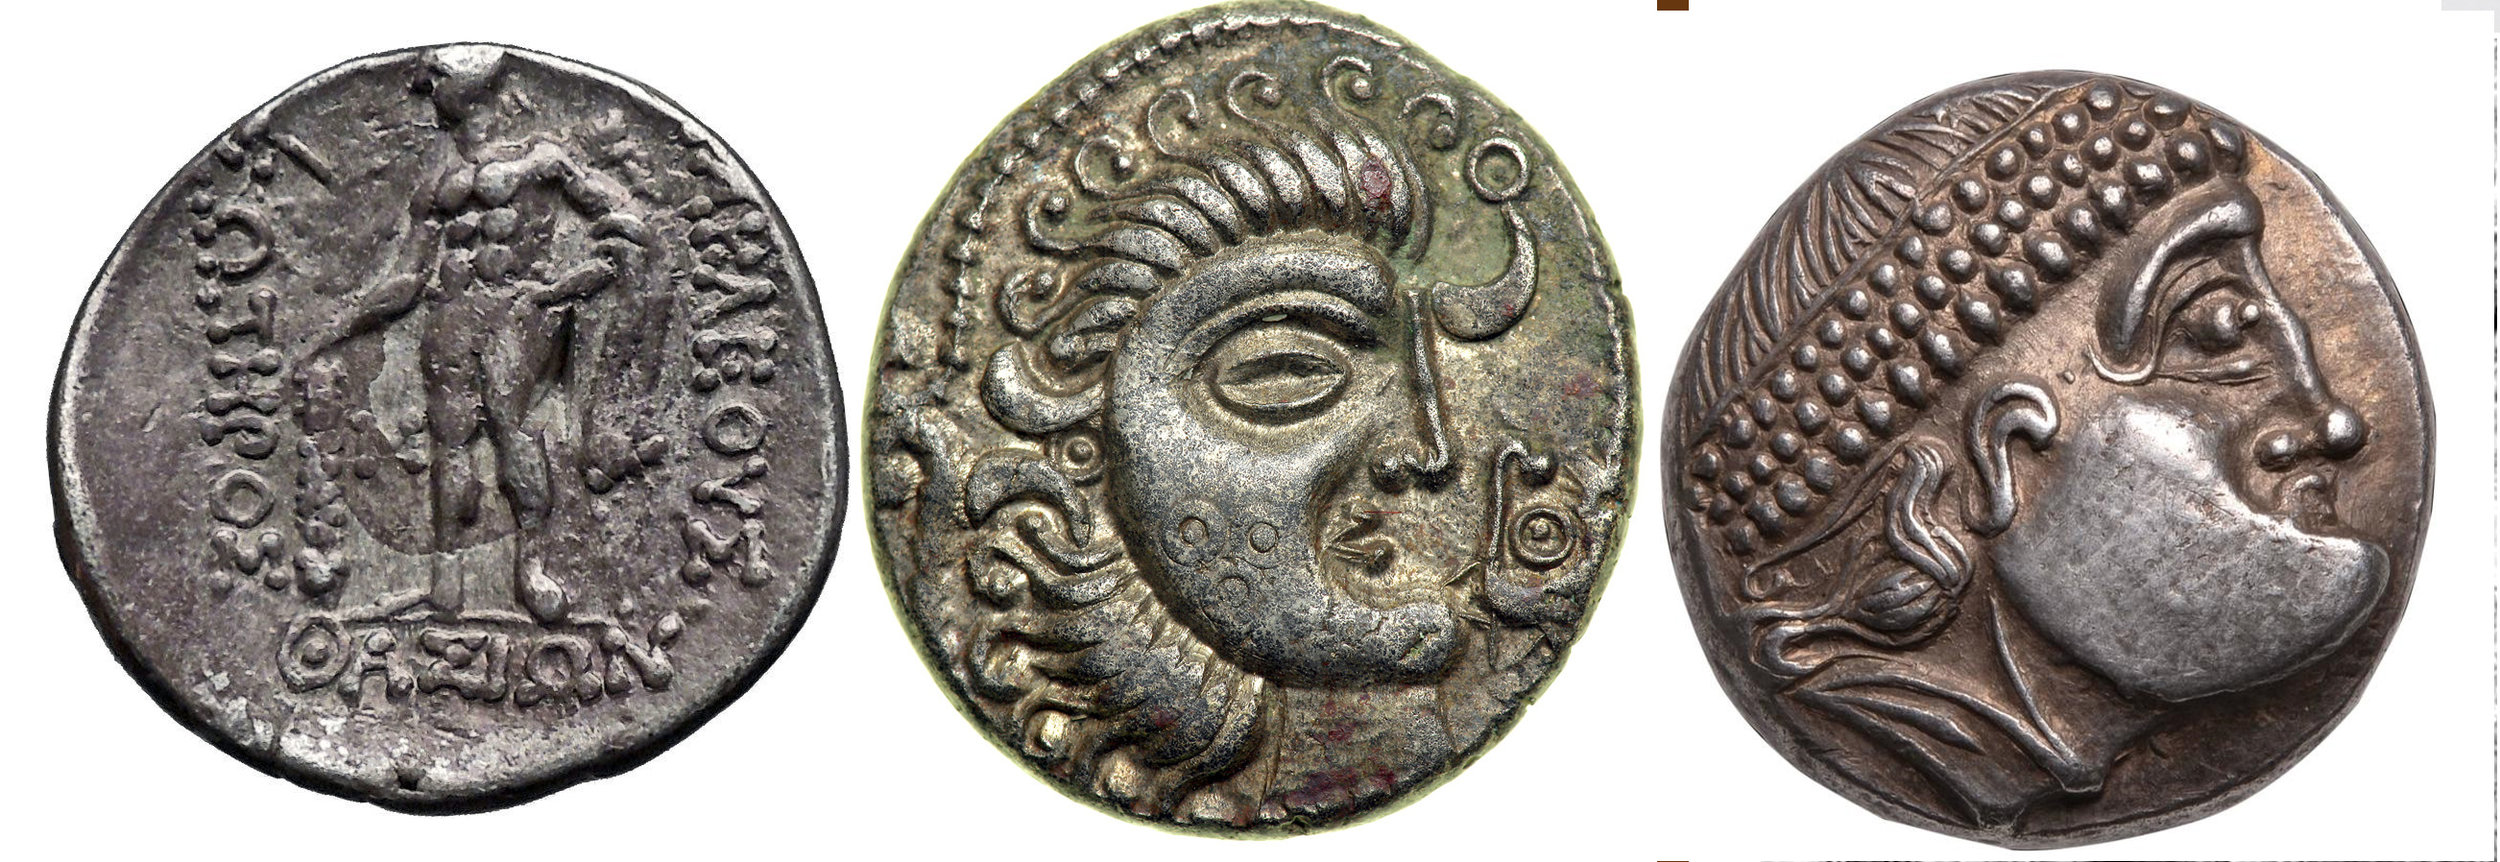 celtic coins.jpg